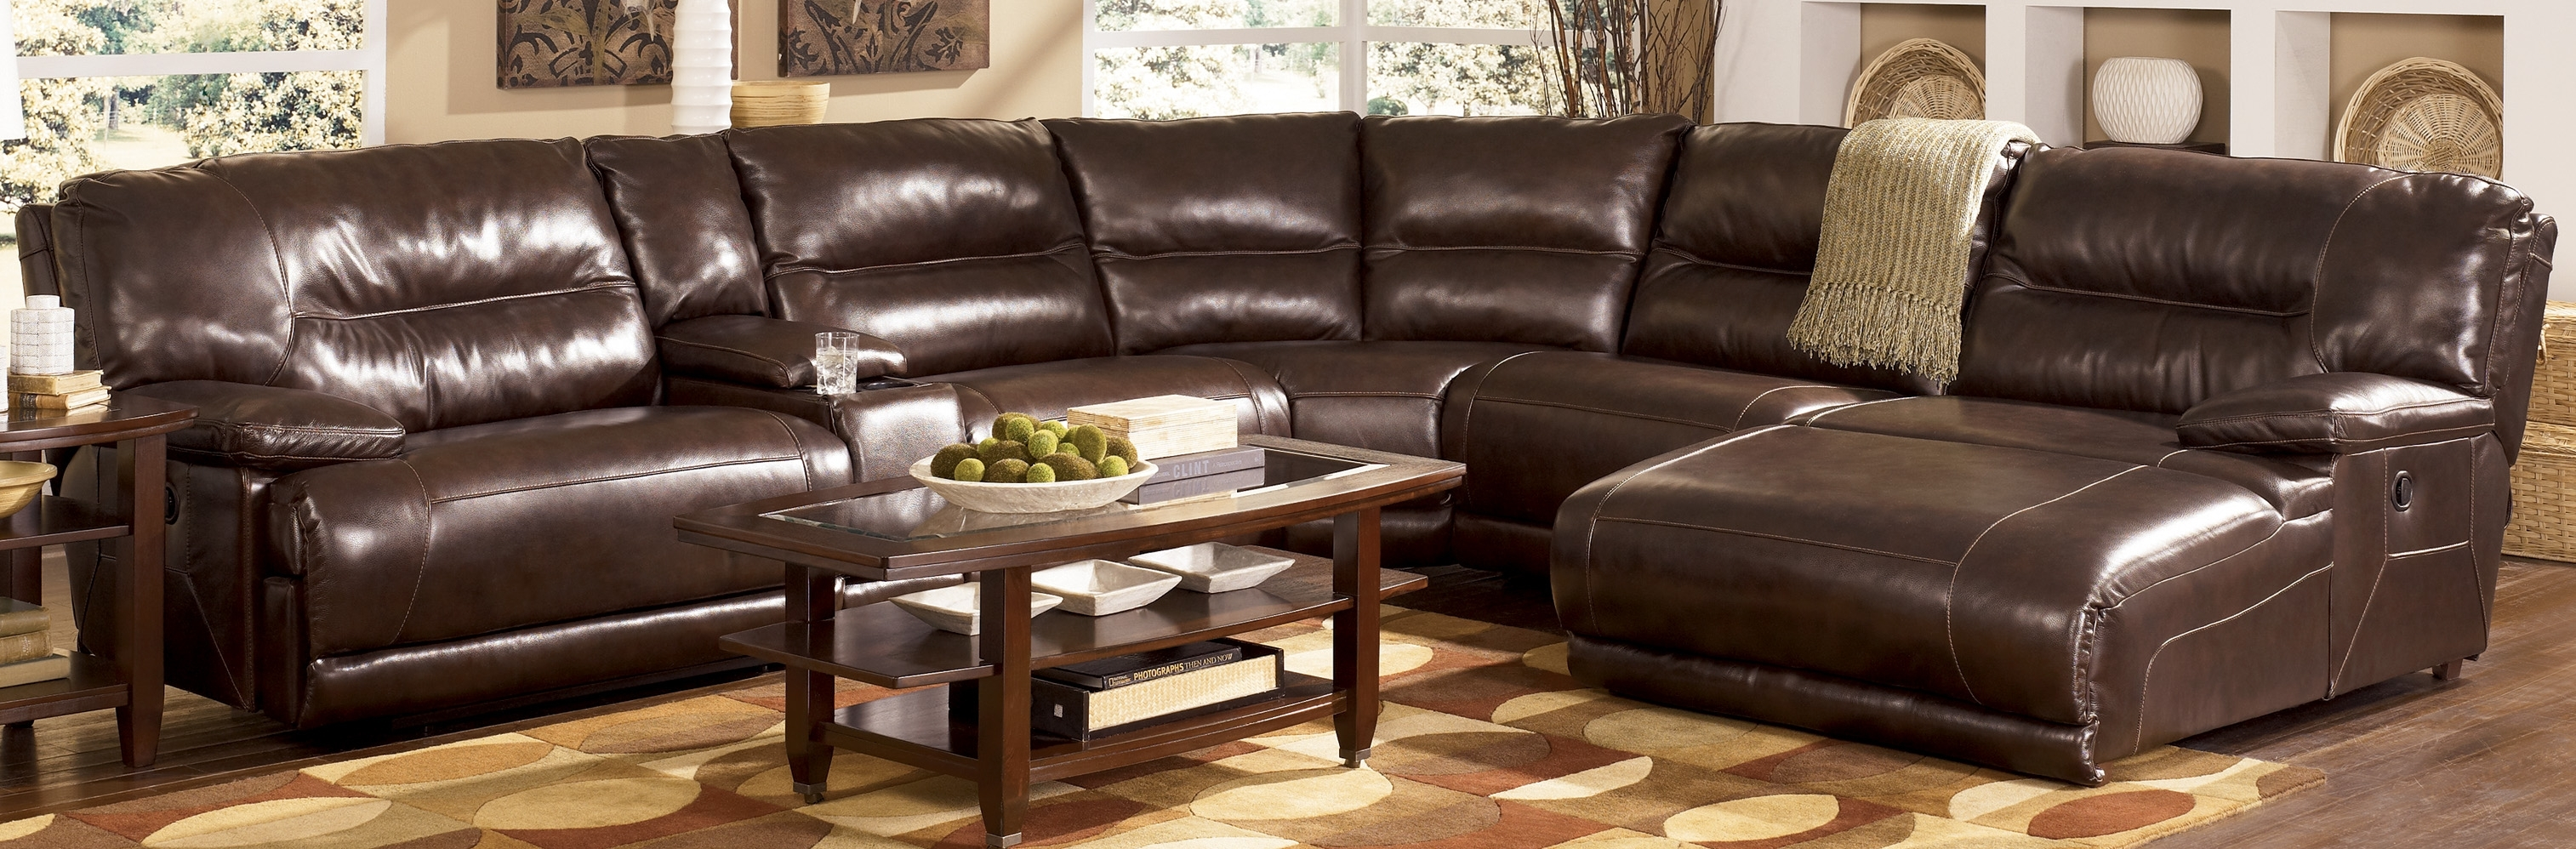 Awesome Ashley Red Leather Sectional Contemporary - Liltigertoo with Red Faux Leather Sectionals (Image 2 of 15)